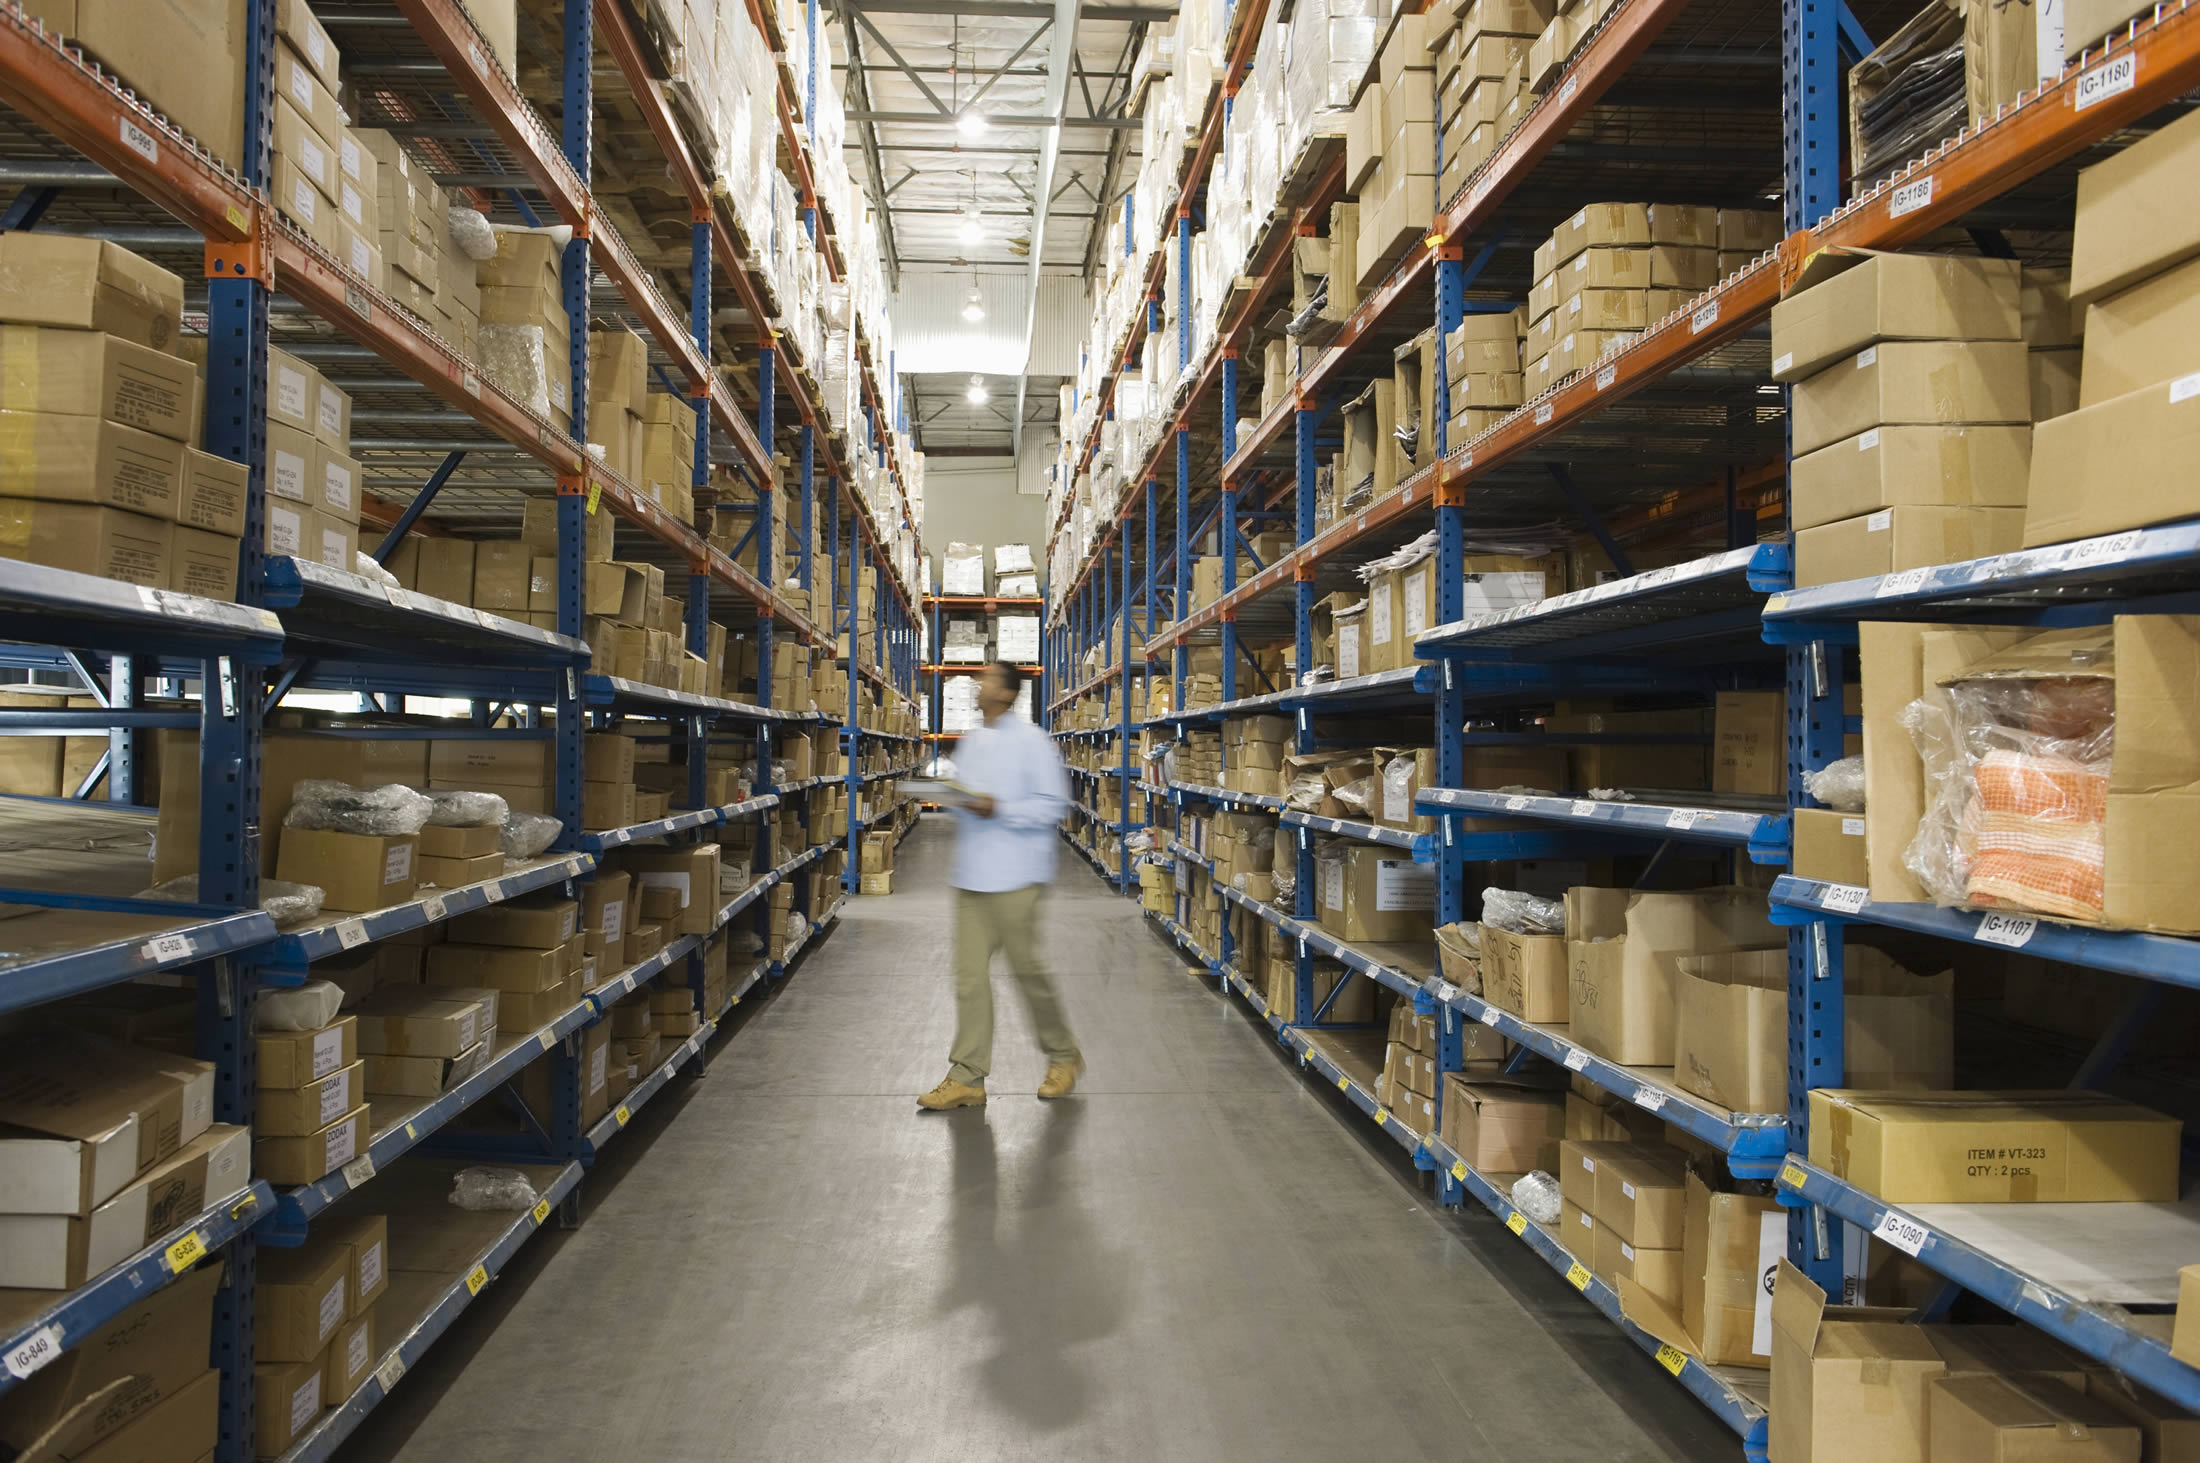 Trust DMSI with Your Toughest Staffing and Logistics Challenges